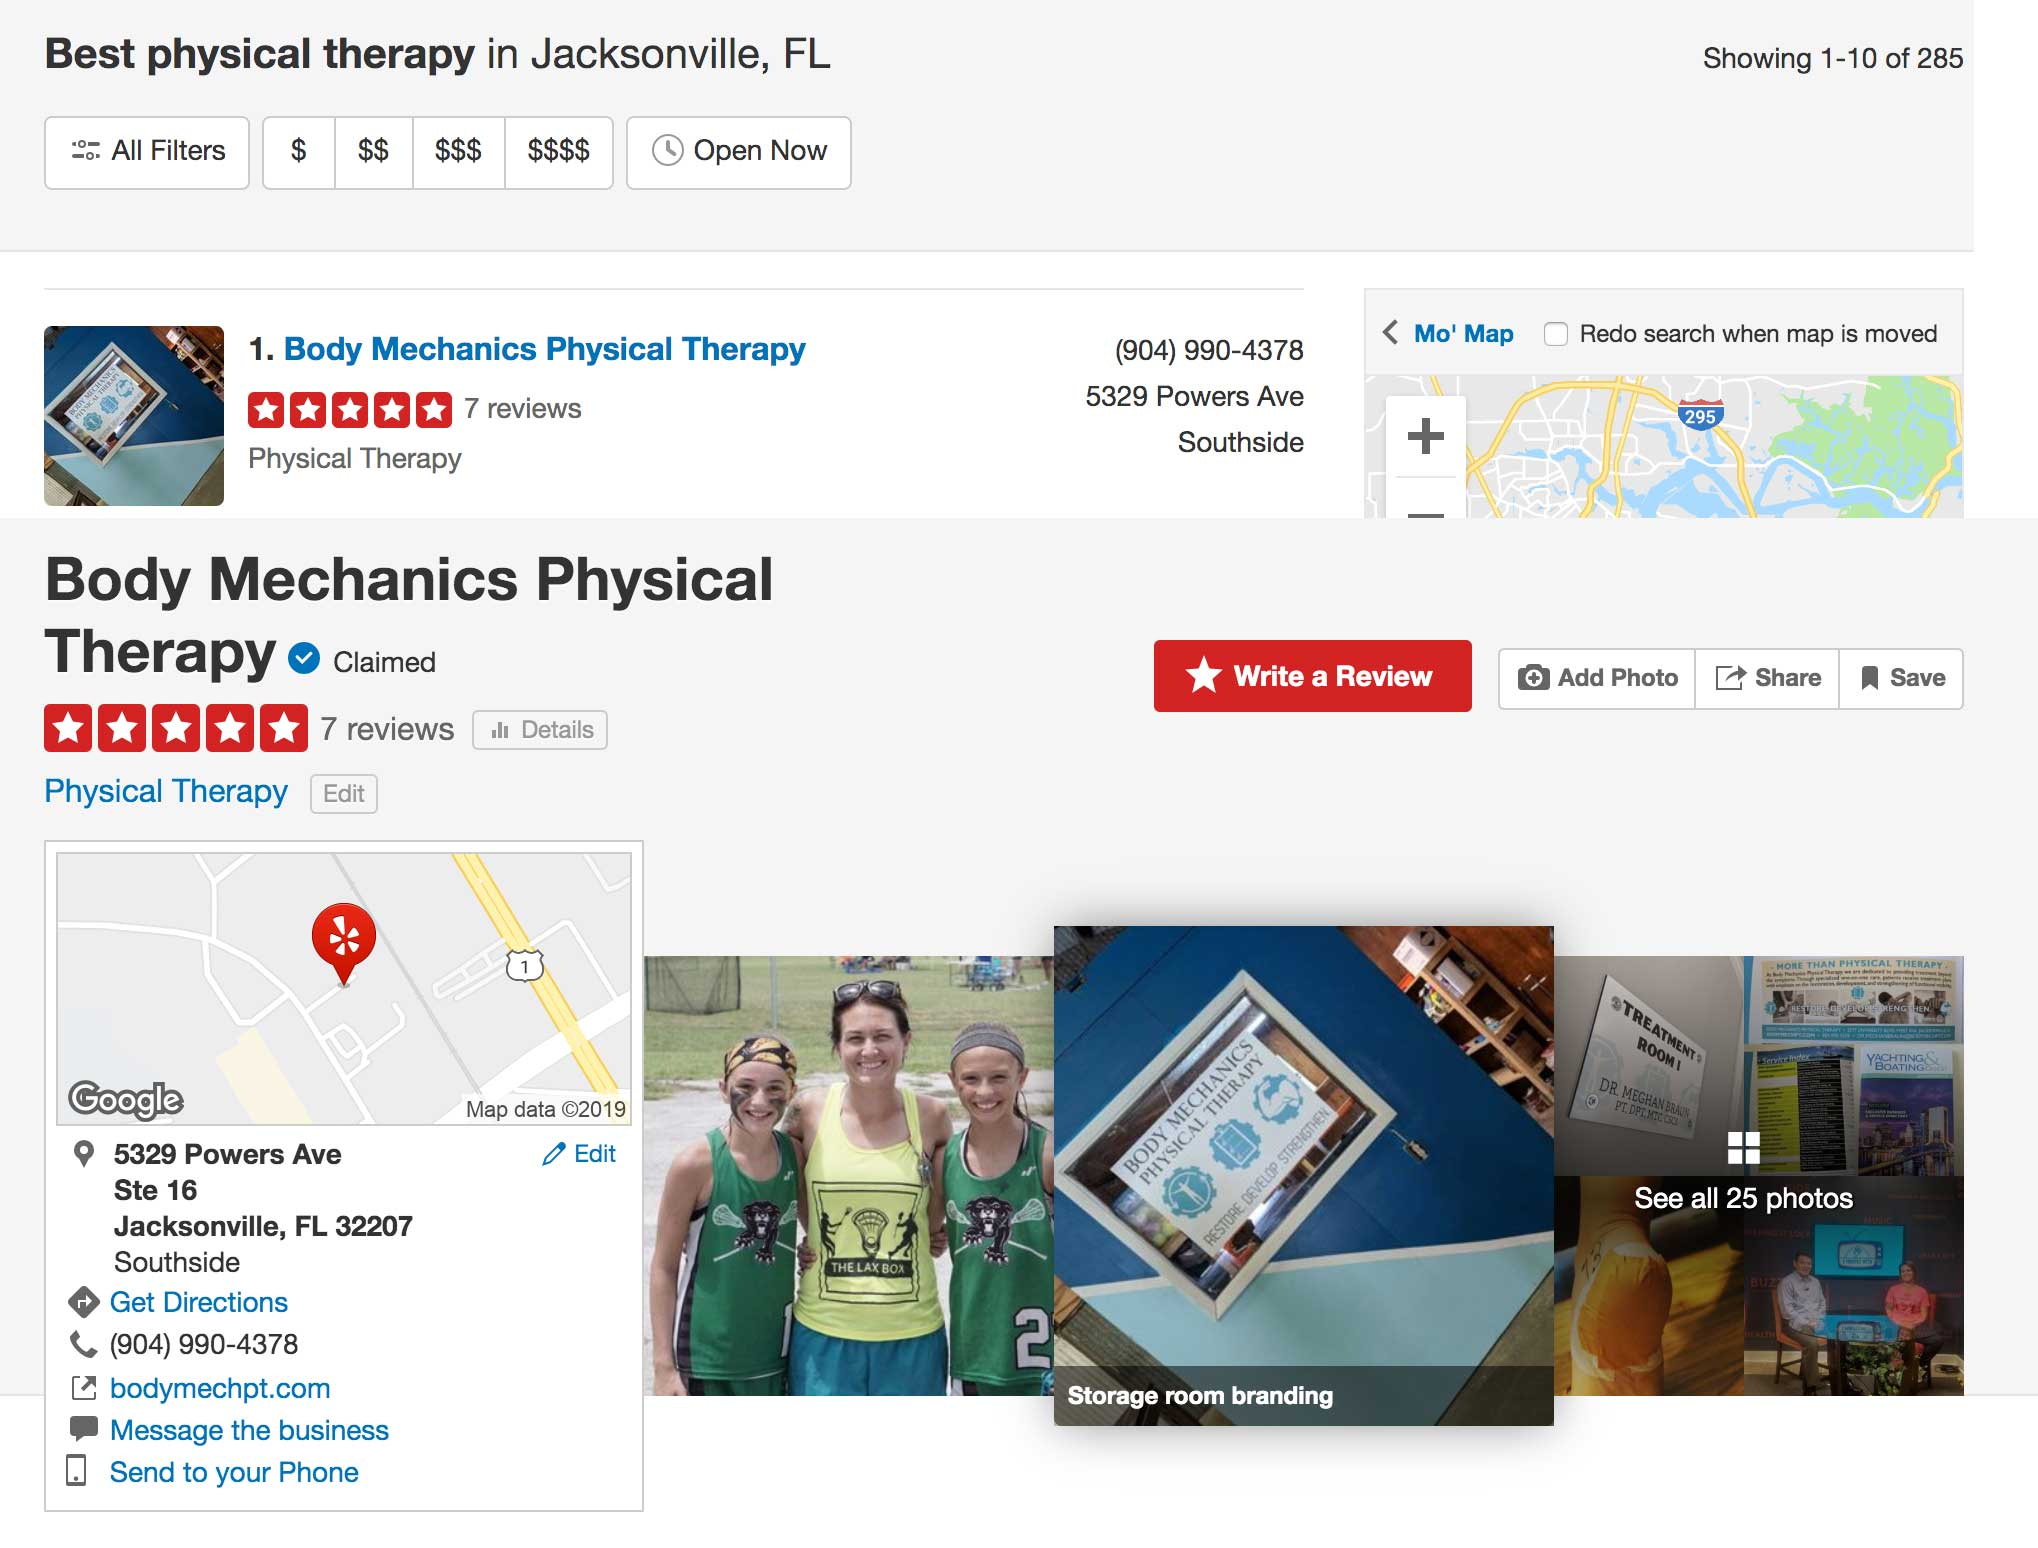 Top Rated Physical Therapist Jacksonville, Florida